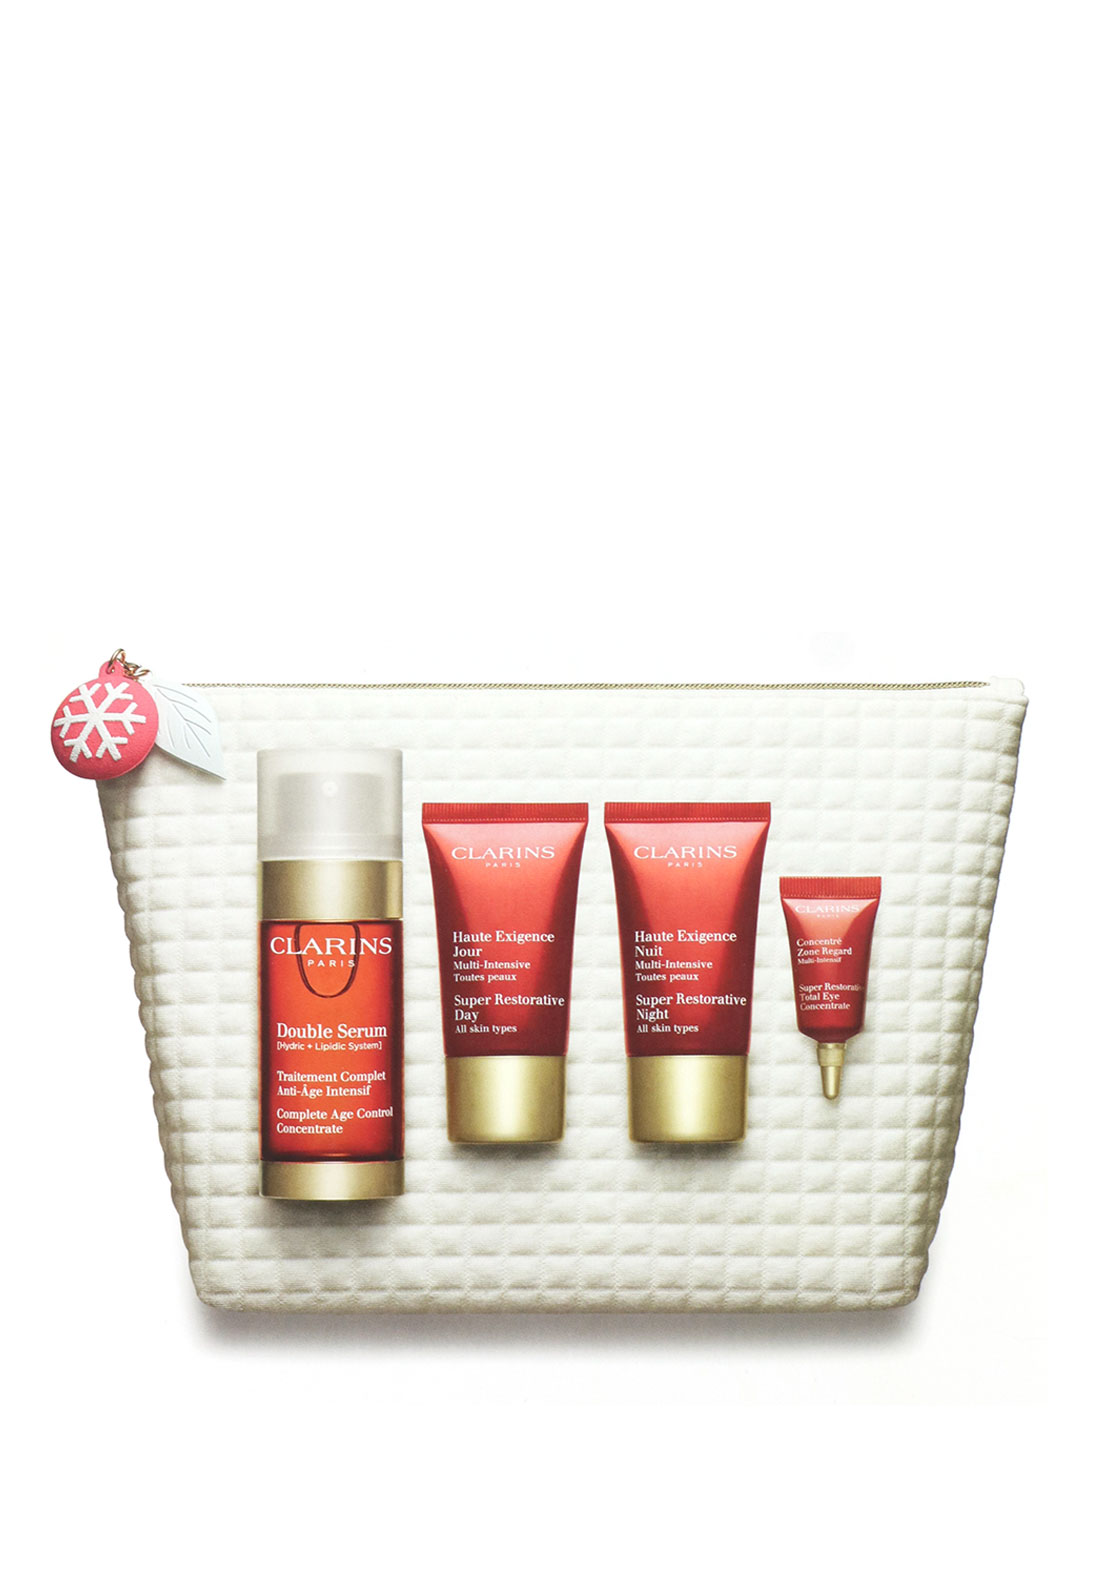 Clarins Christmas 'Replenishing, illuminating & densifying experts 'Gift  Set